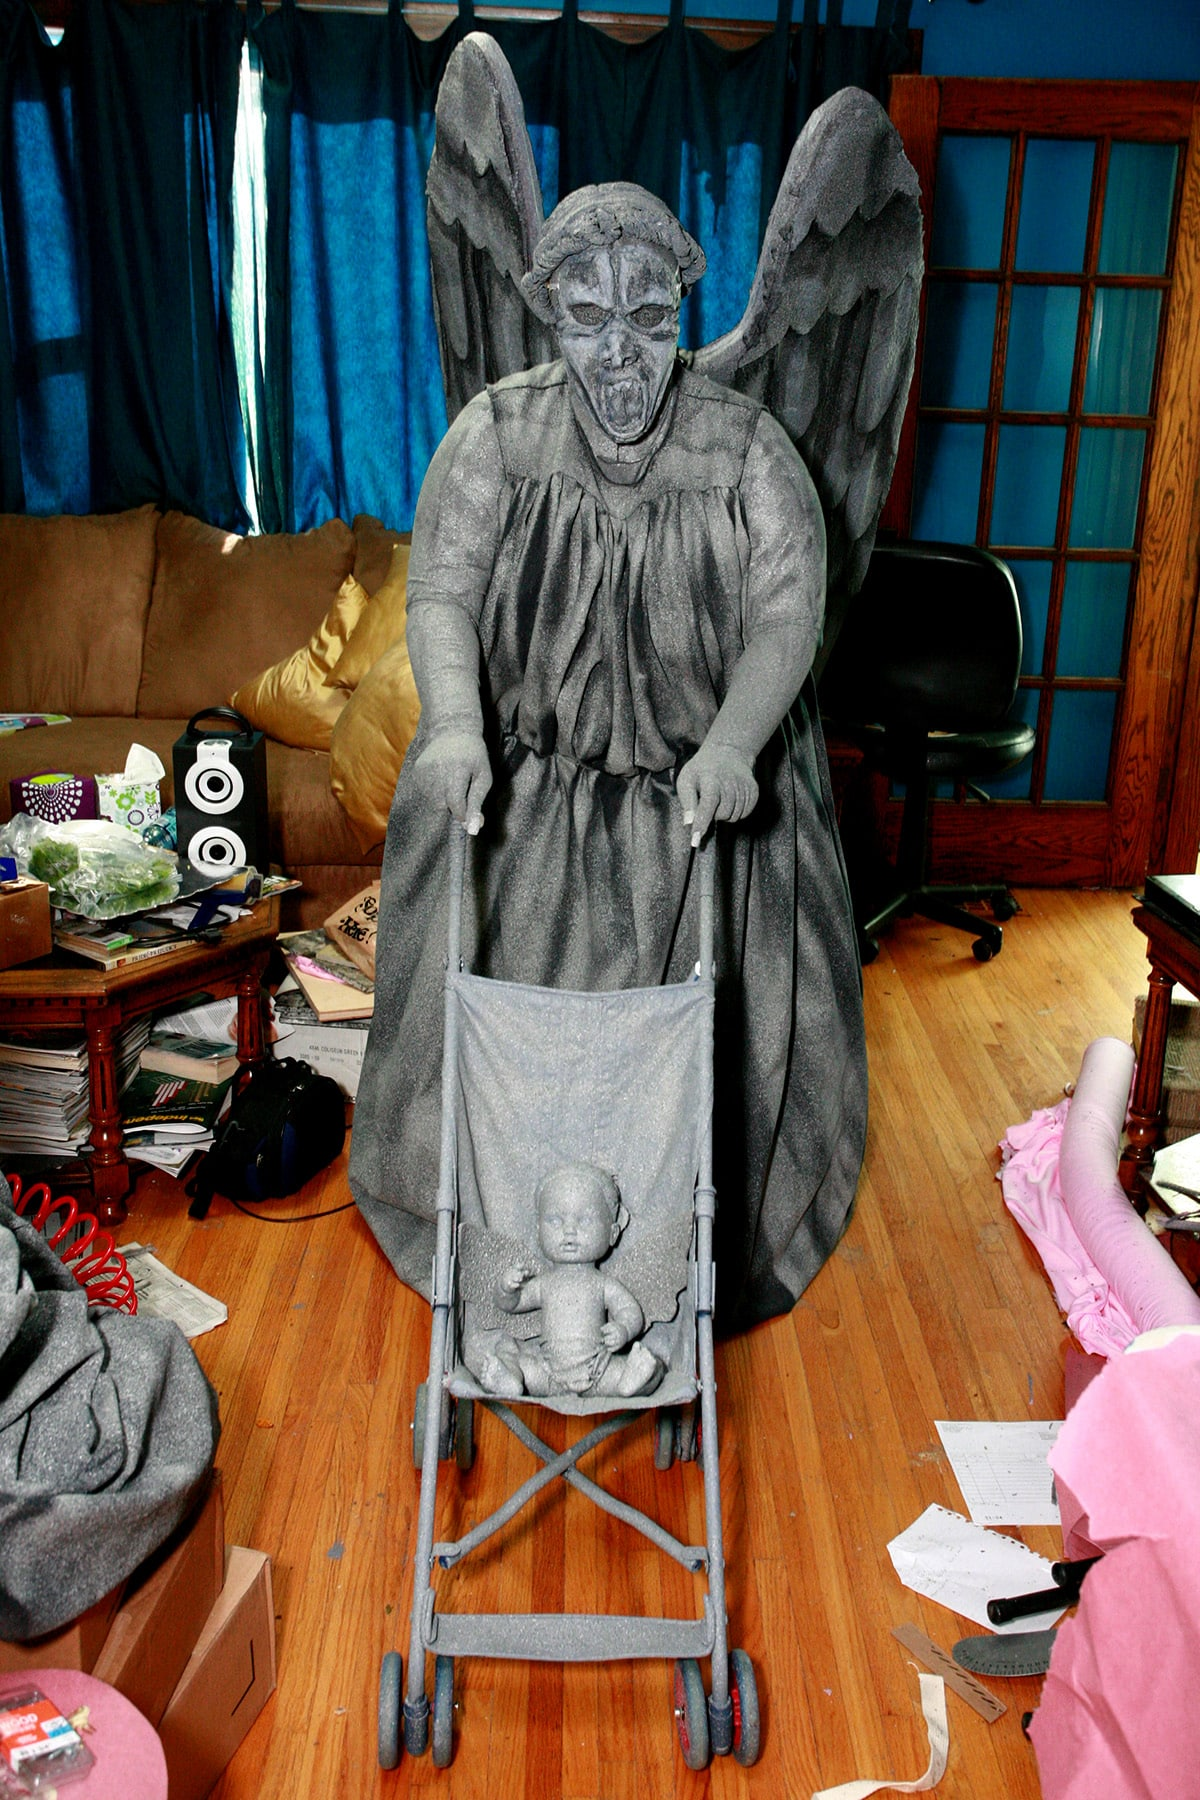 A person dressed as a Weeping Angel, pushing a baby weeping angel in a stroller.